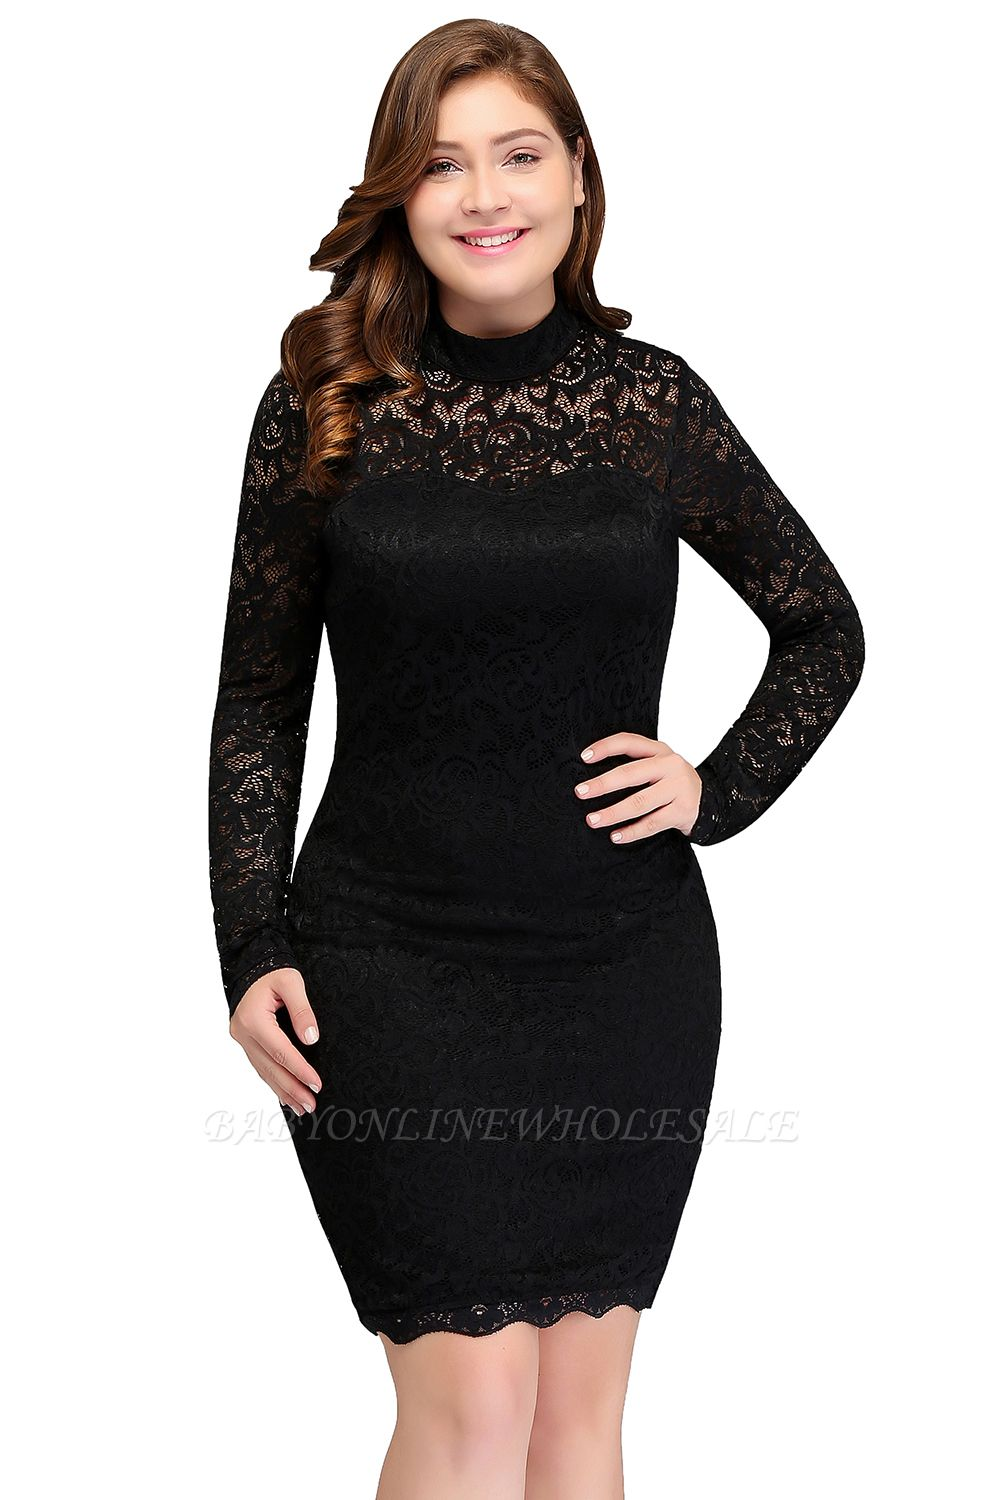 JANE | Mermaid Crew Short Long Sleeves Lace Black Plus size homecoming  Dresses